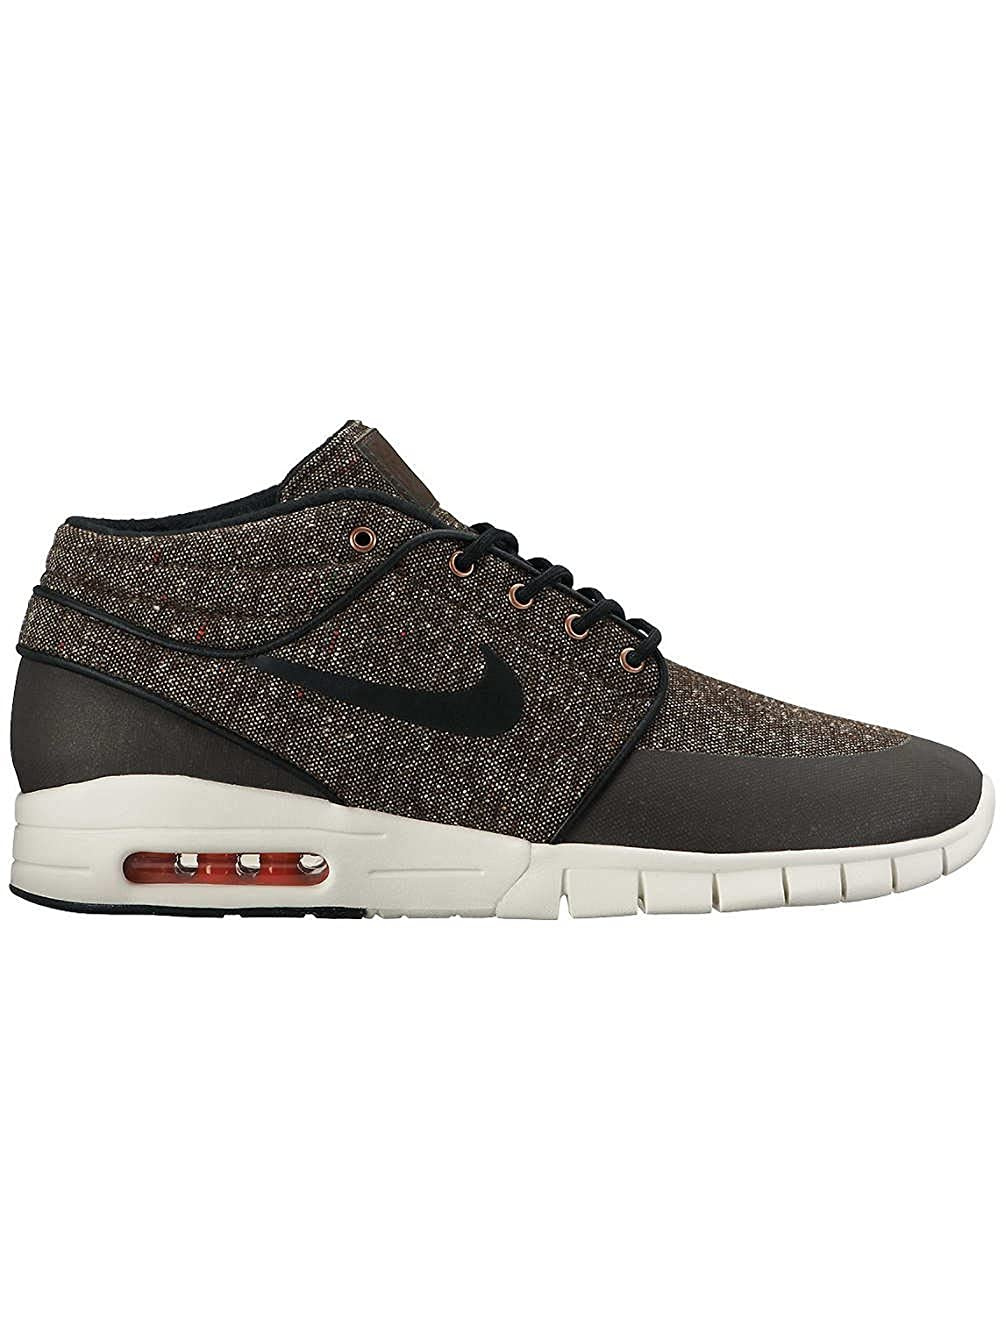 wholesale dealer 3646e ee8dc Nike Stefan Janoski Max Mid Shoe - Mens Baroque Brown Laser  Crimson sail Black (11. 5)  Buy Online at Low Prices in India - Amazon.in